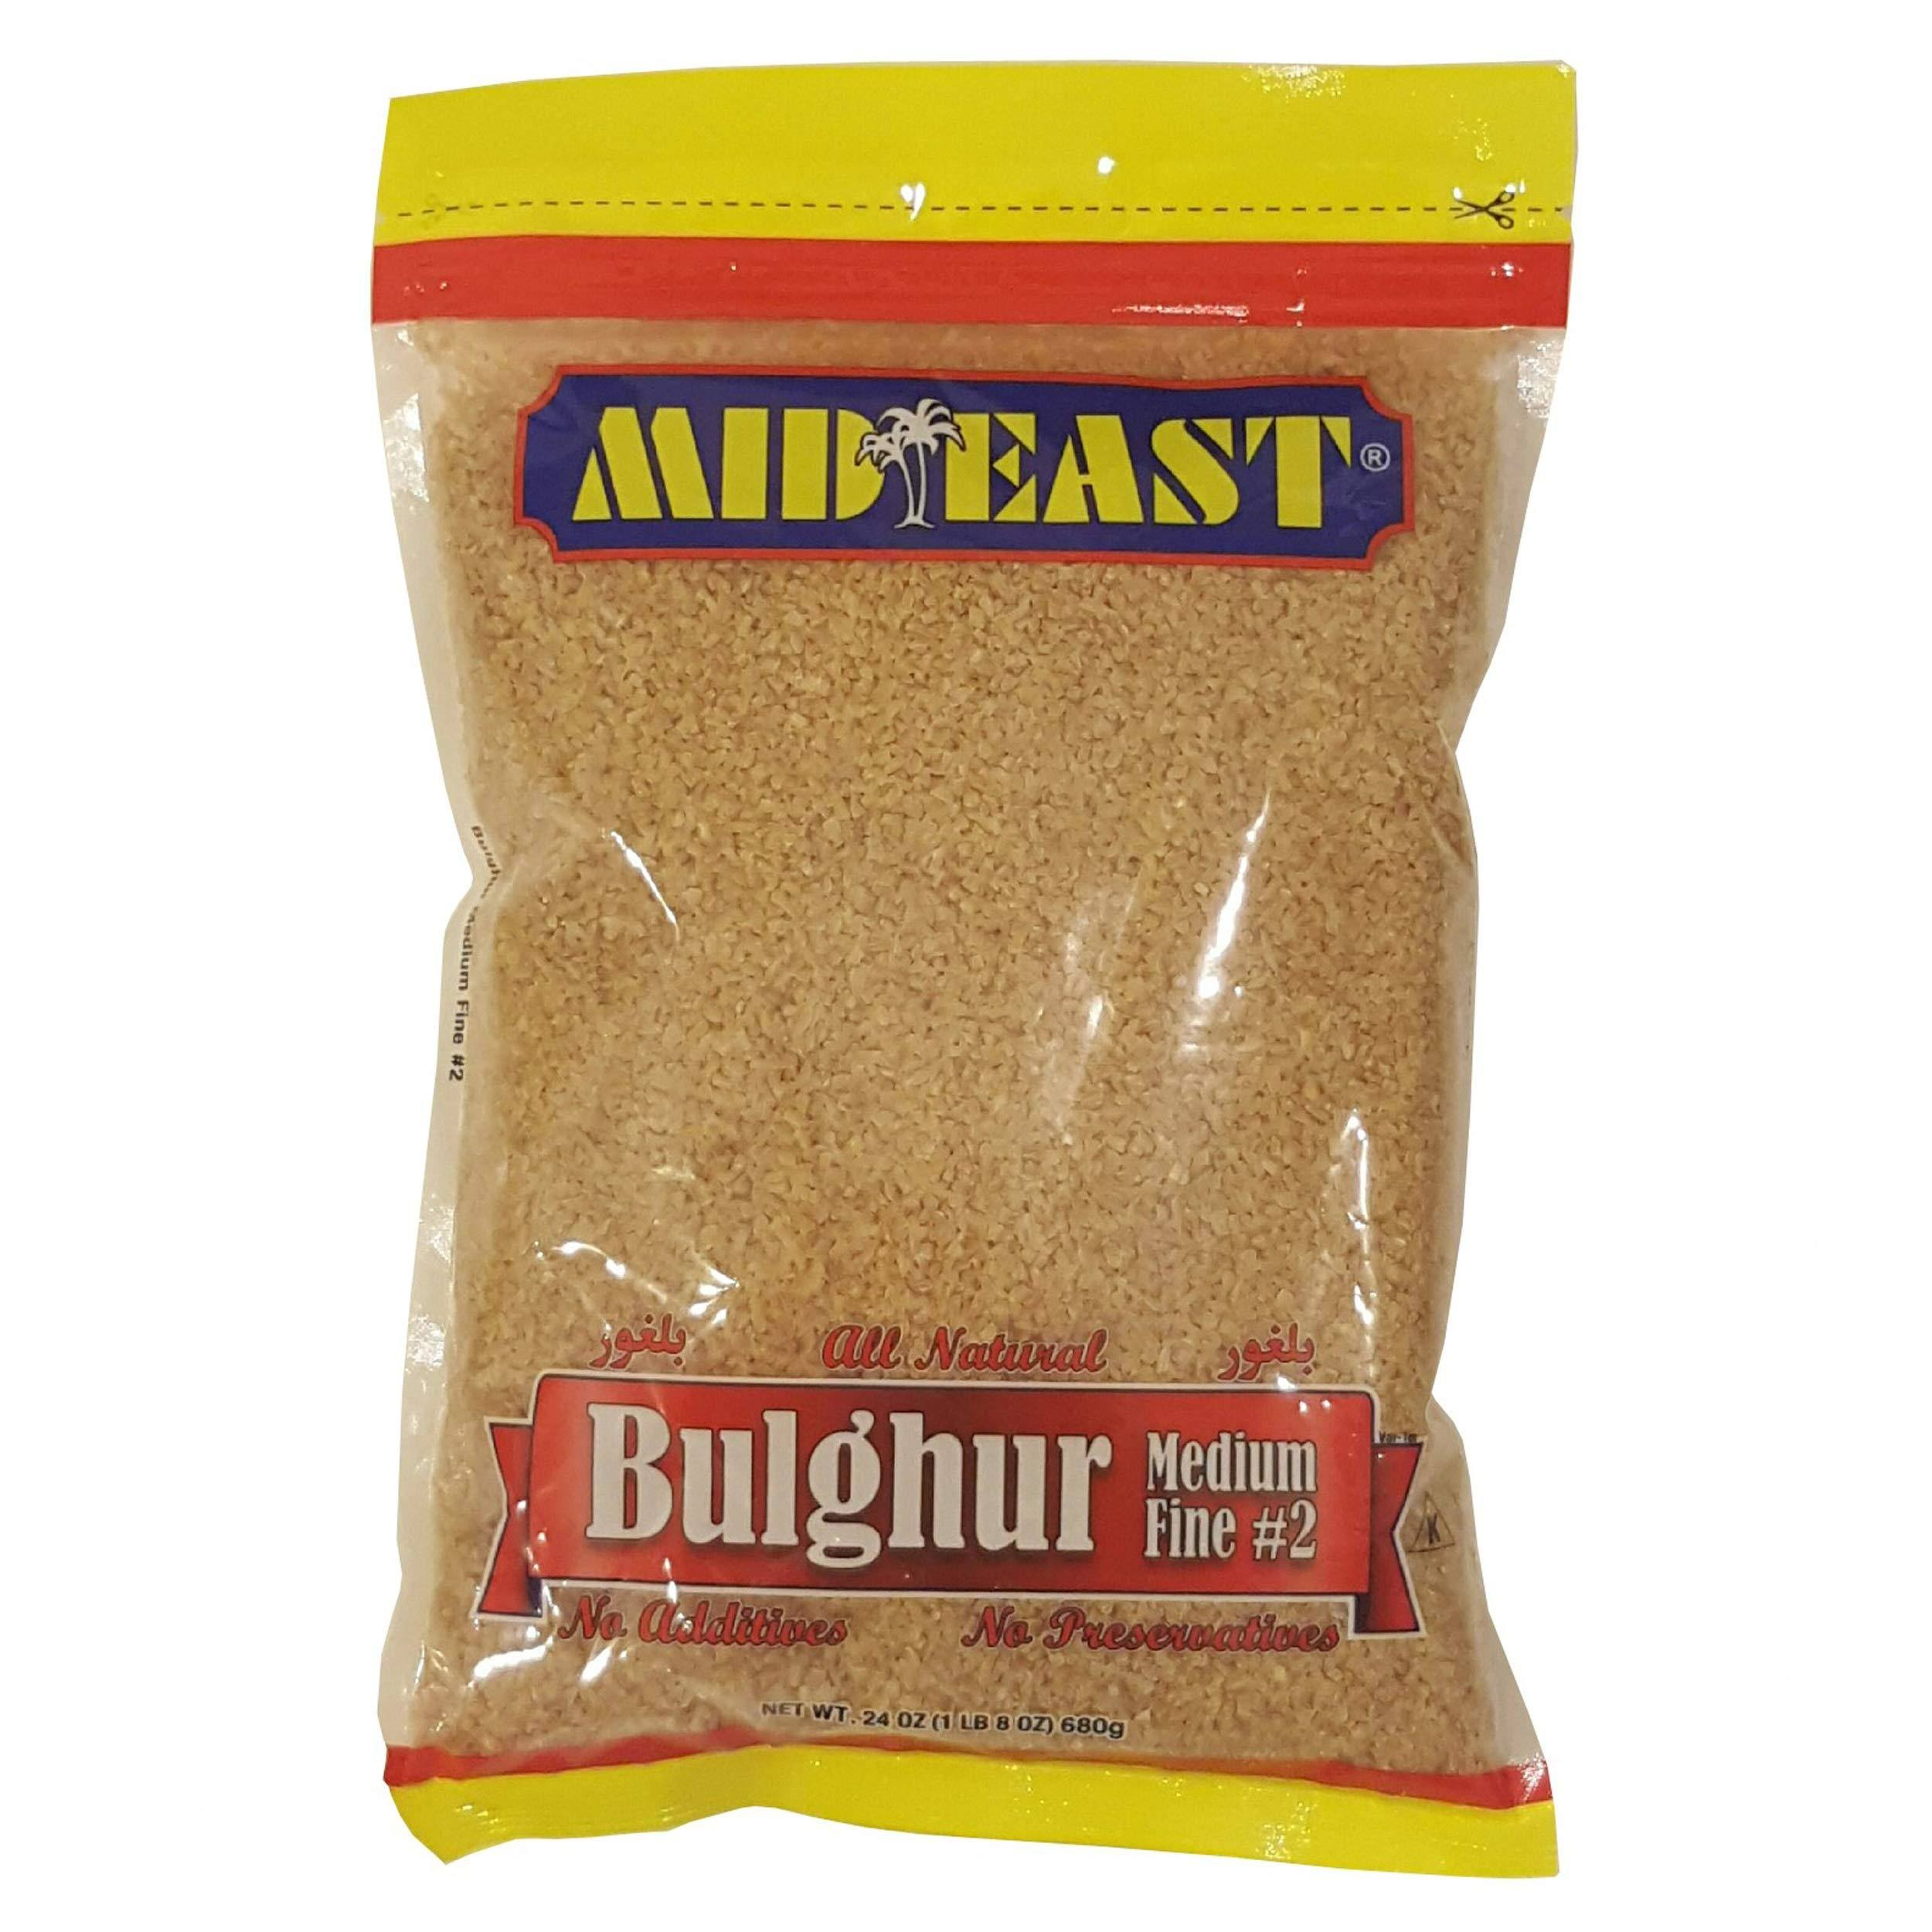 Mid East Bulgur Medium Fine 2